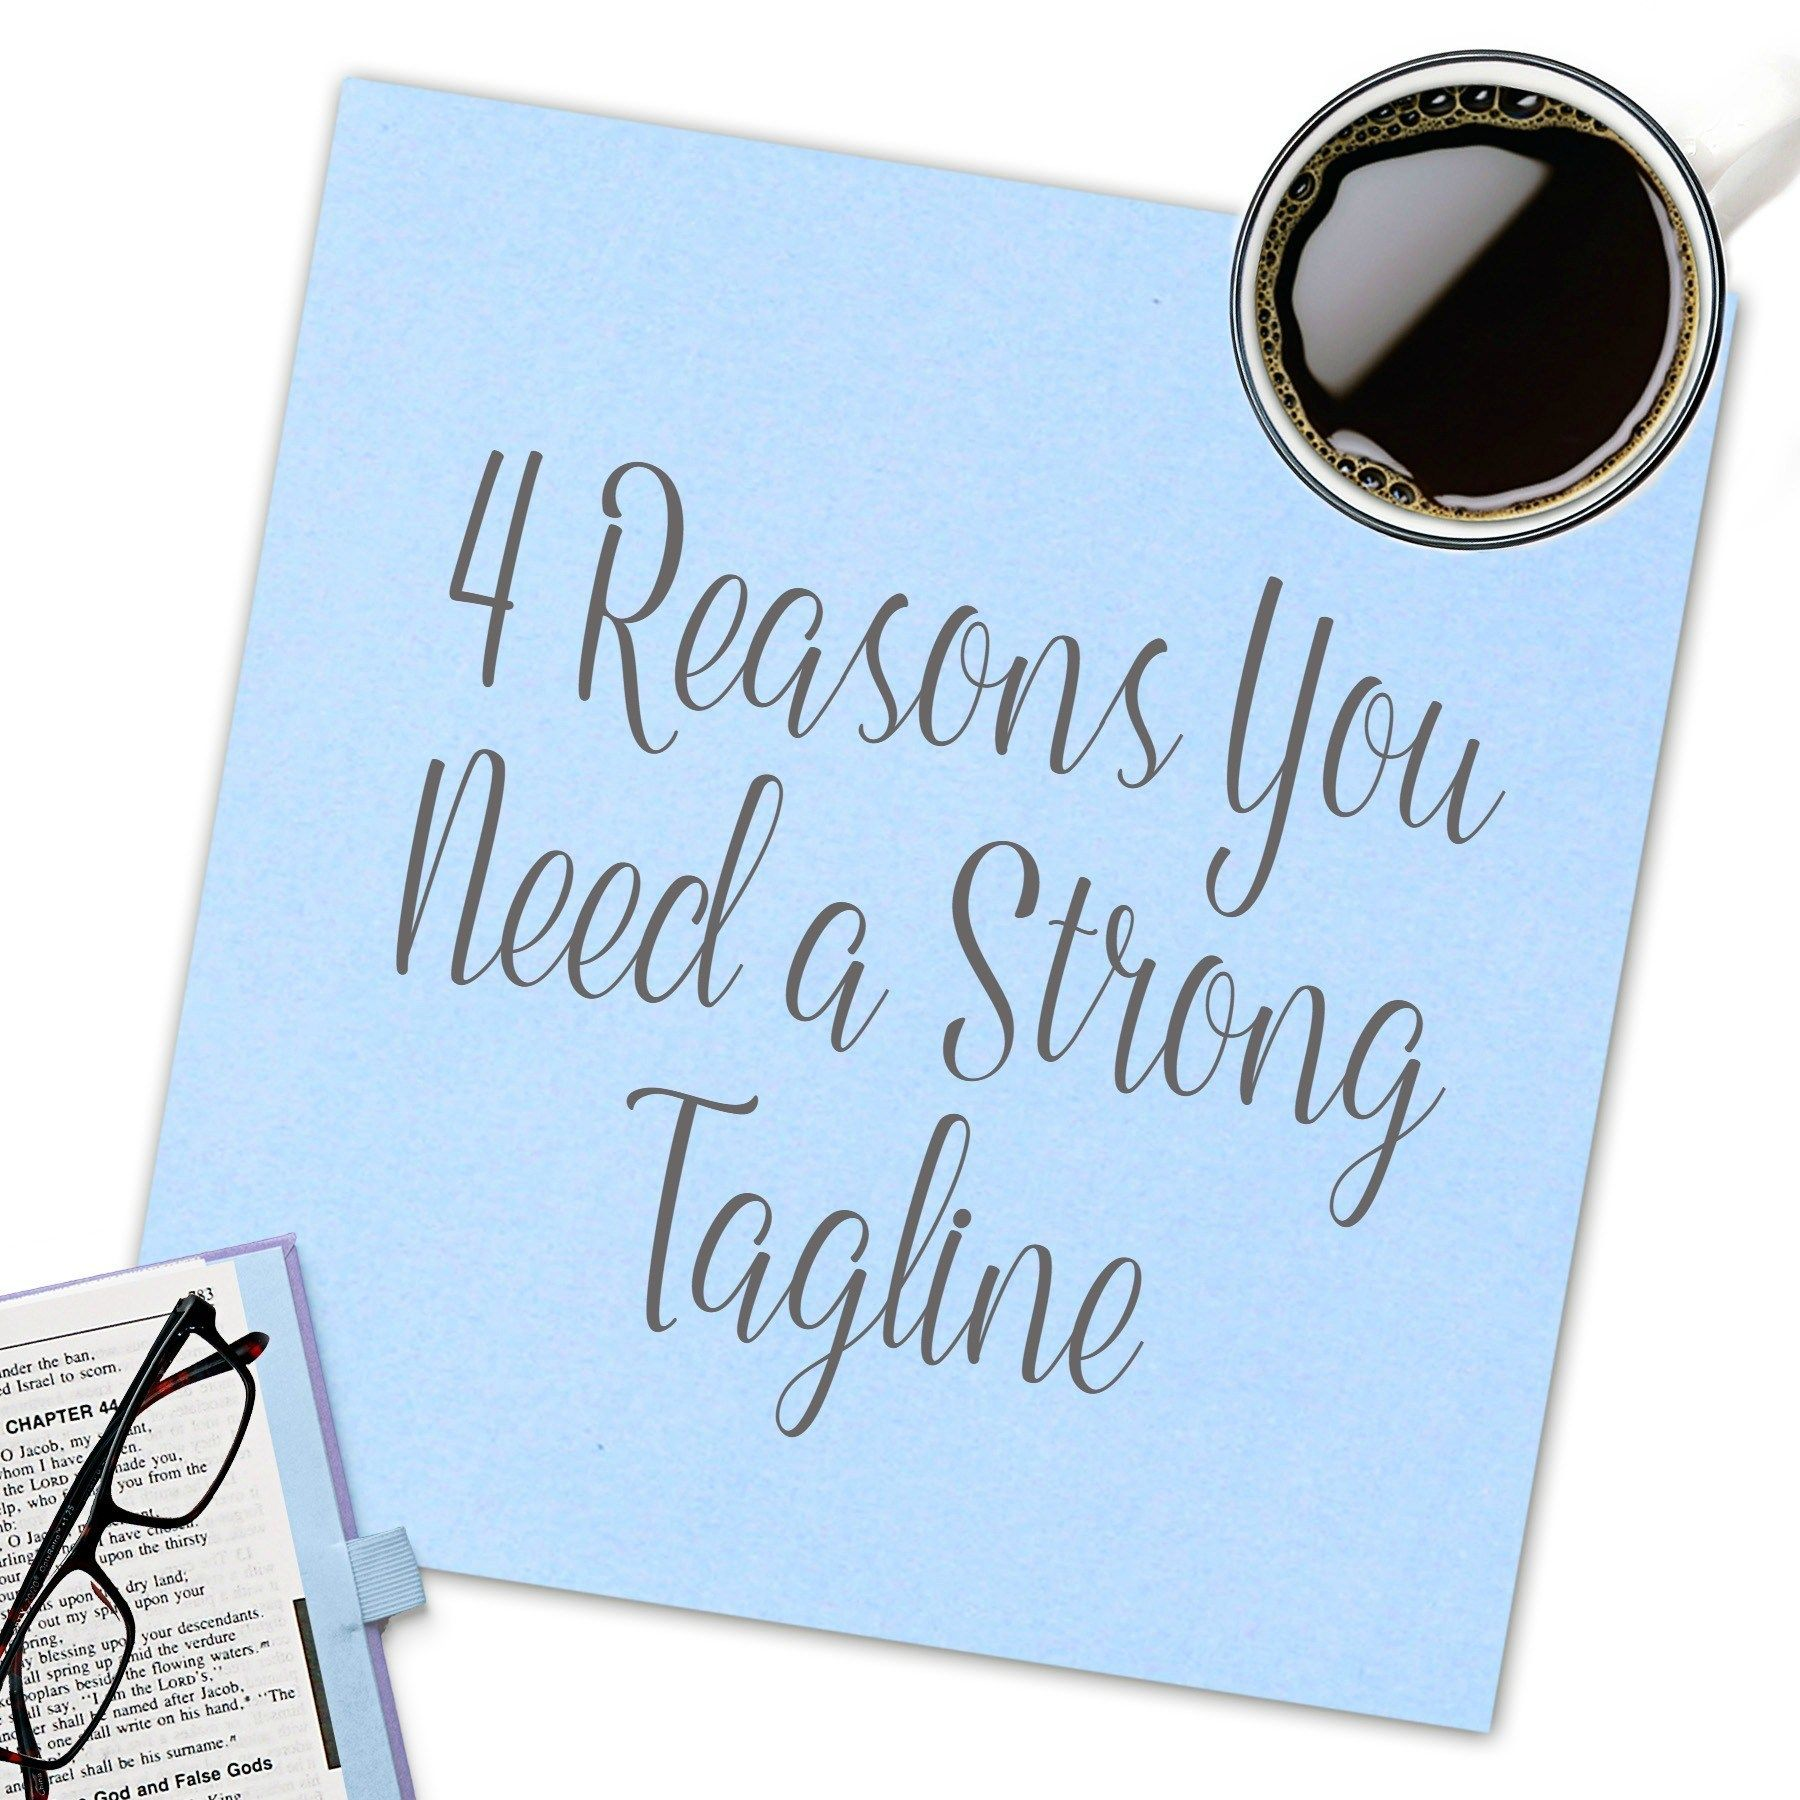 4 Reasons You Need A Strong Tagline | Signage | How to know